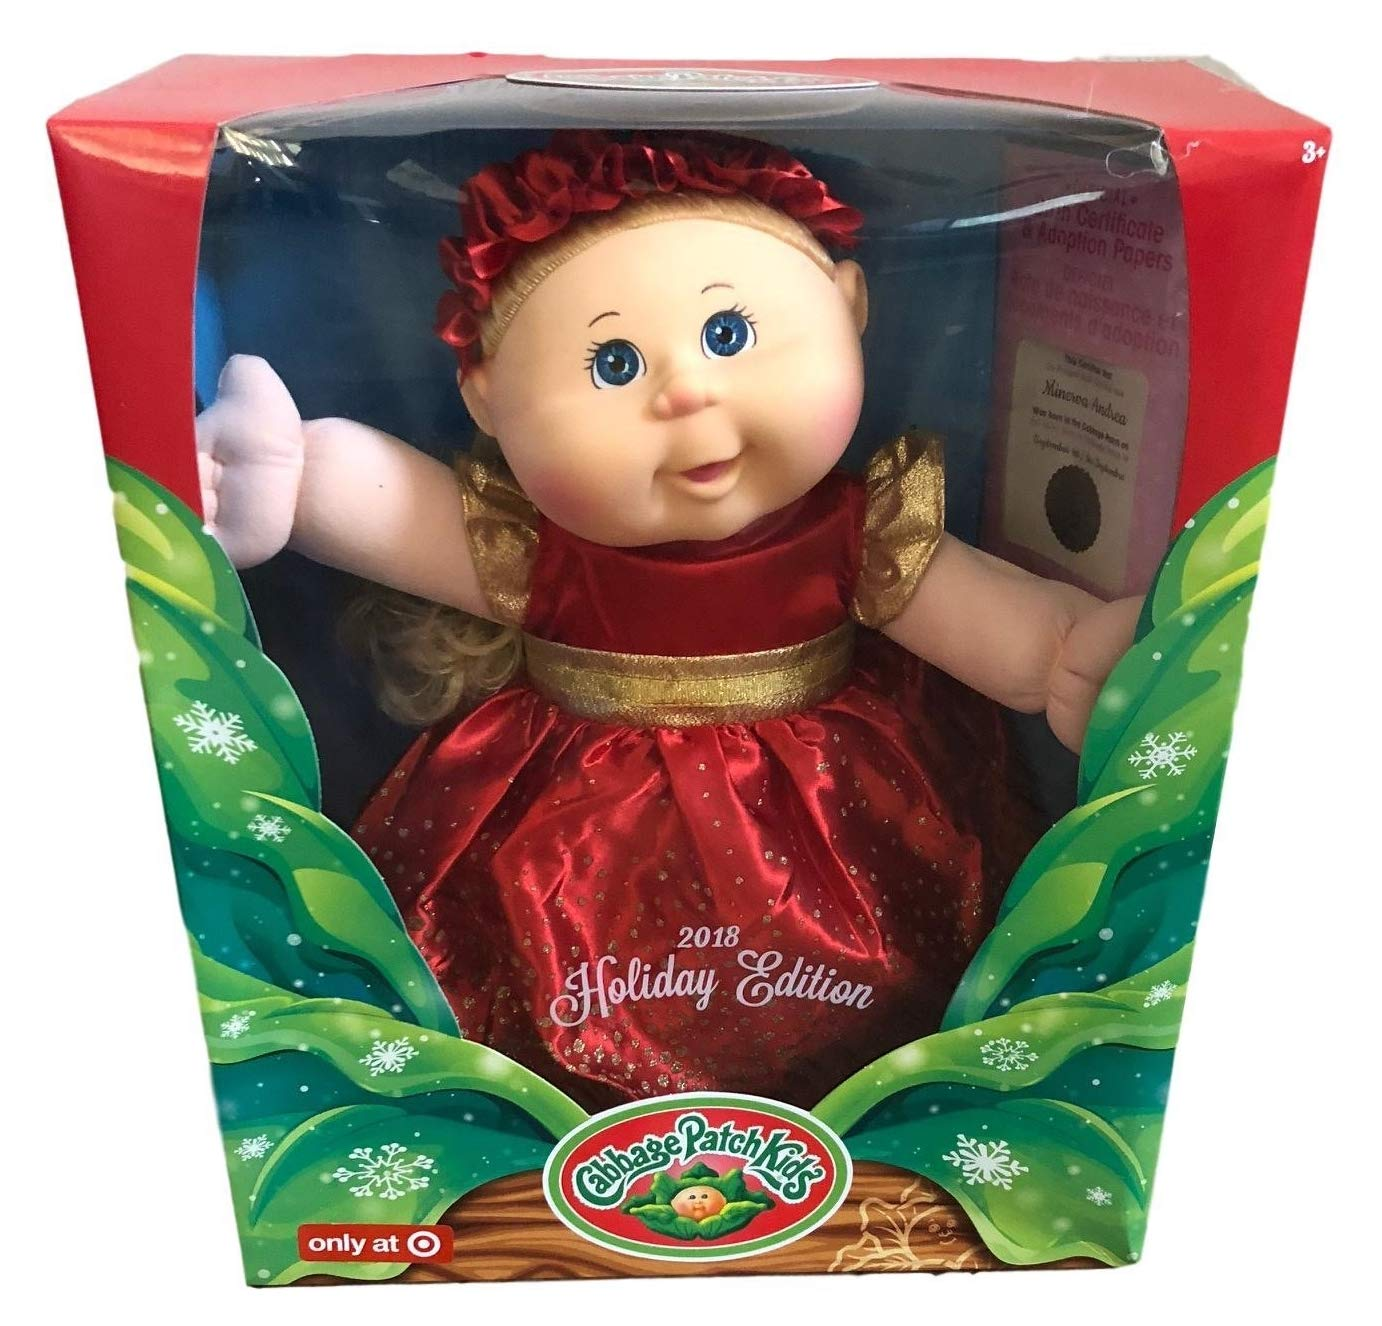 Cabbage Patch Kids 2018 Limited Edition Holiday Baby Doll Blonde with Blue Eyes Fabrique